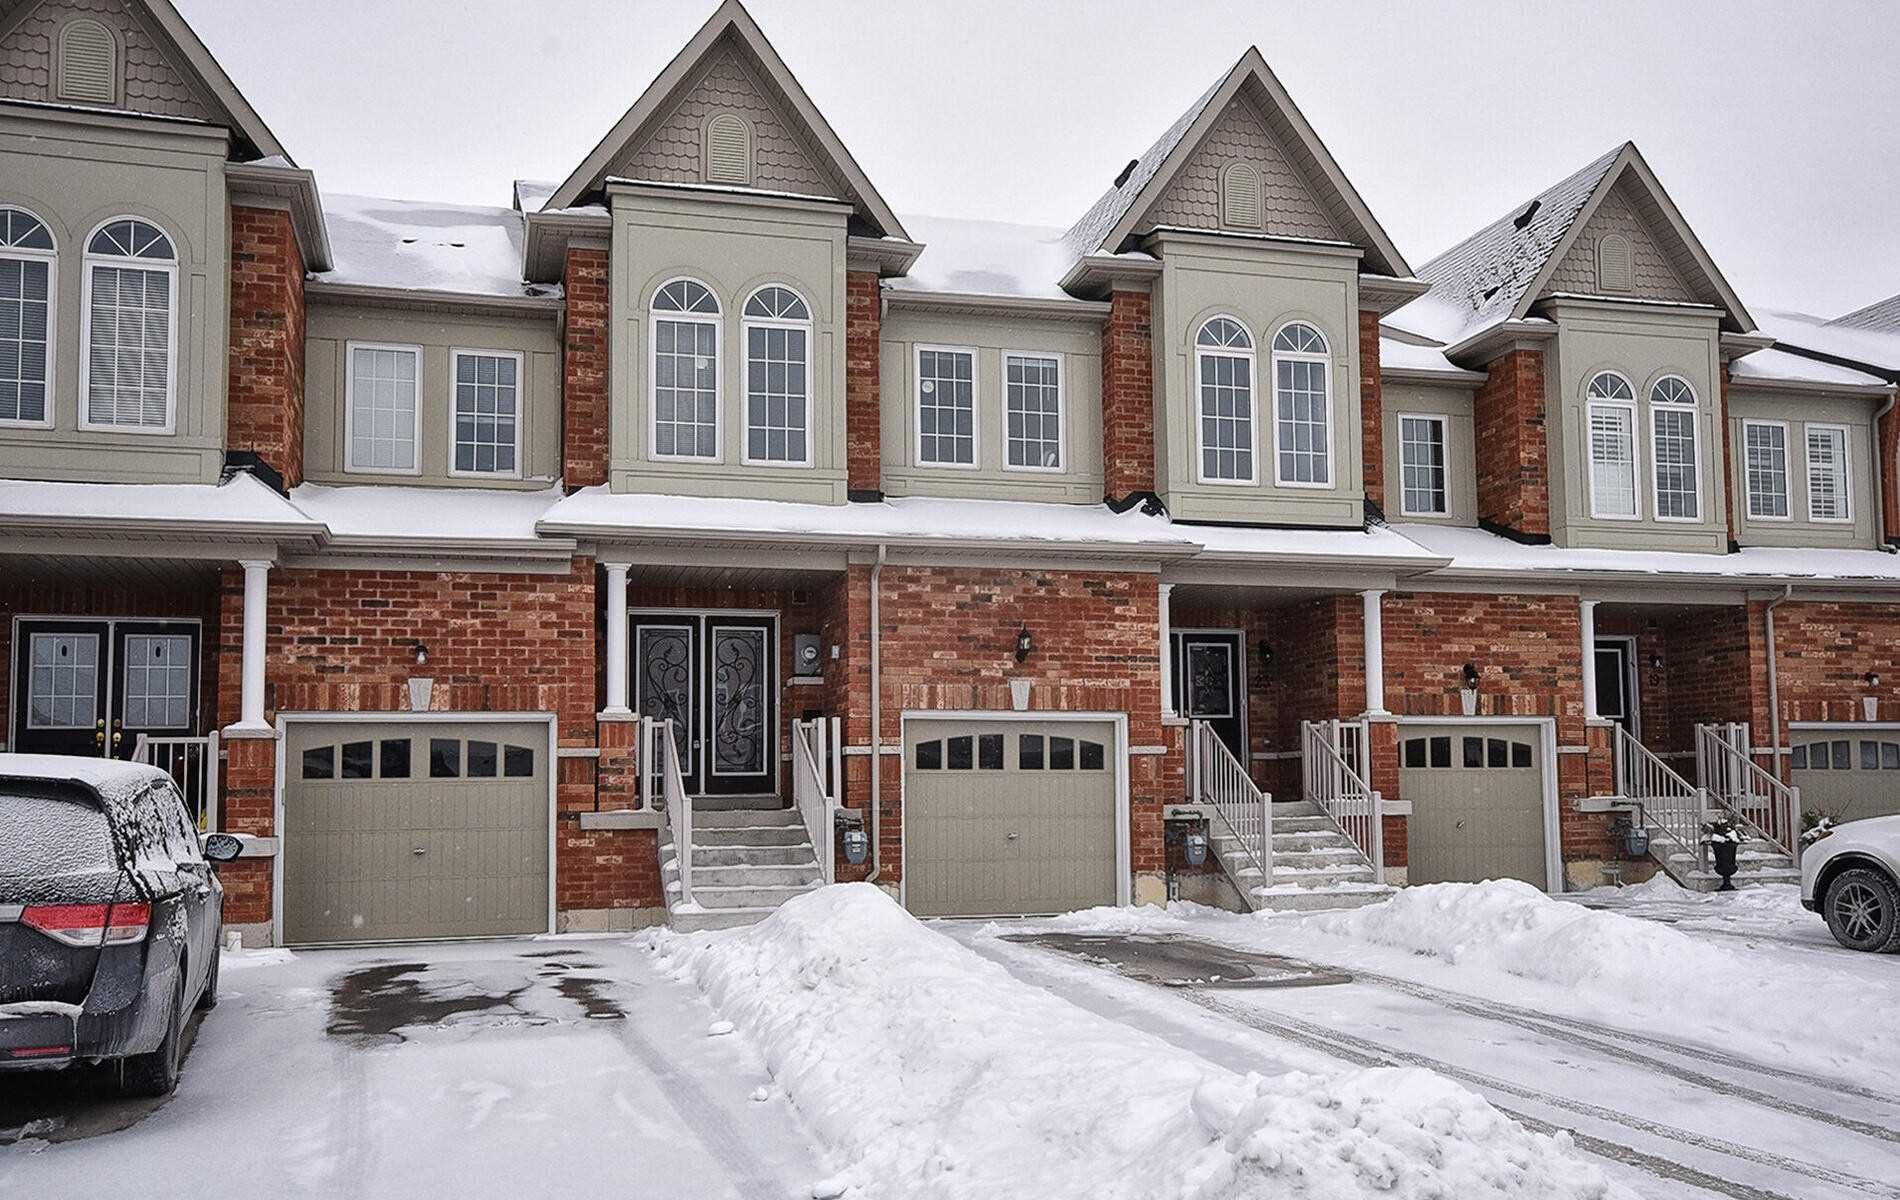 Main Photo: 27 Clarinet Lane in Whitchurch-Stouffville: Stouffville House (2-Storey) for sale : MLS®# N5097771